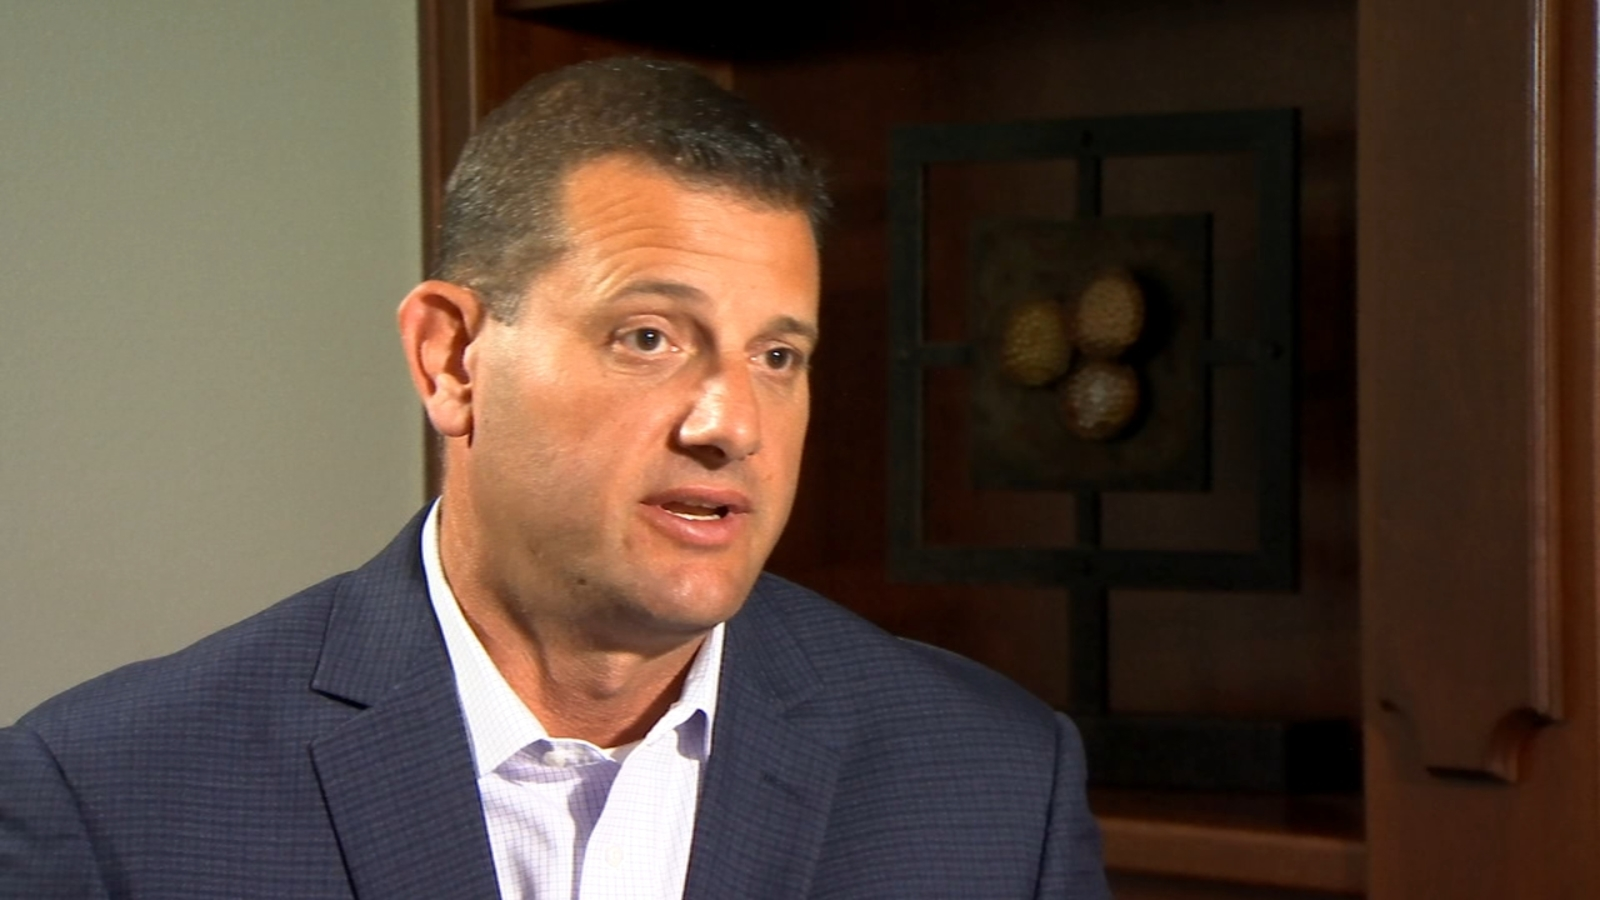 California's David Valadao one of 10 Republicans to vote for Trump's impeachment